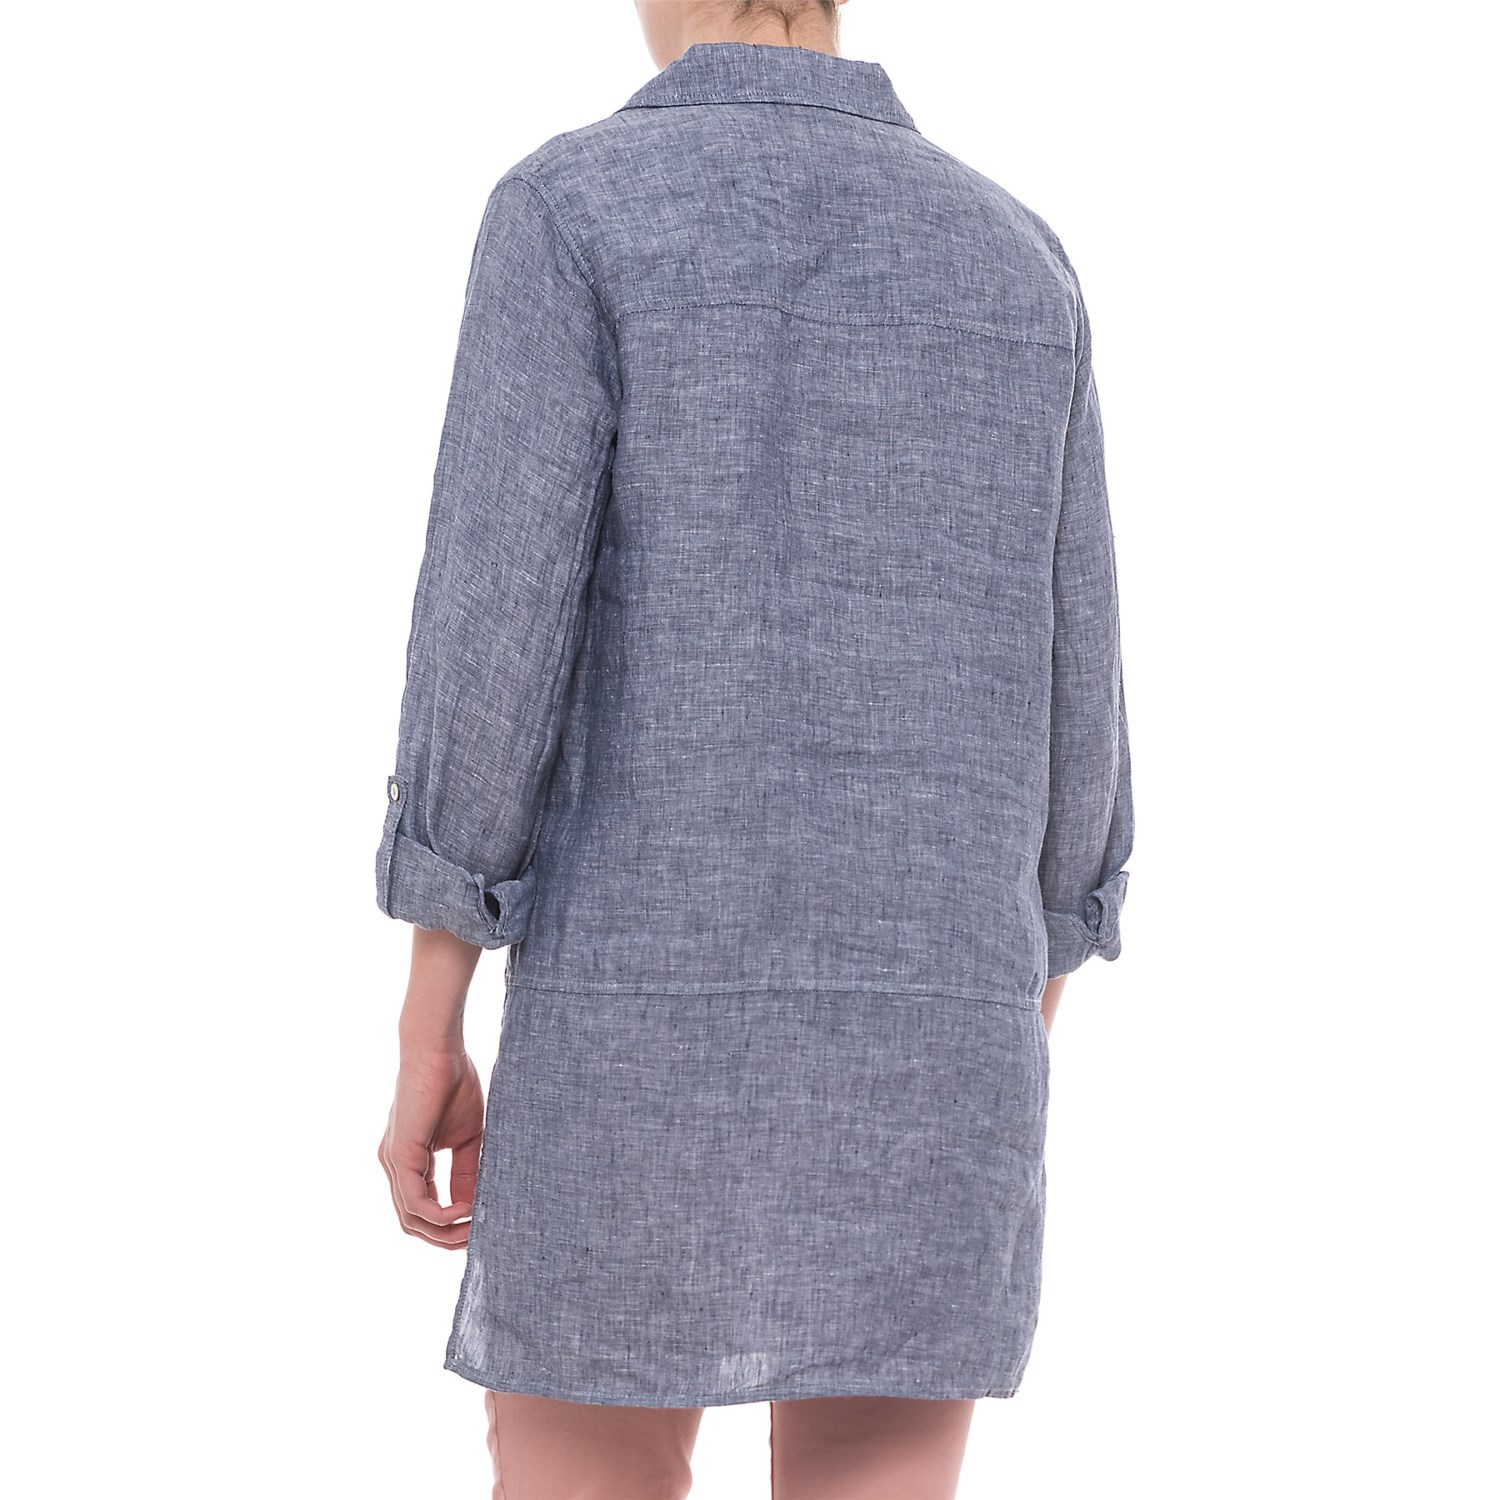 9b8df42d314bd Tahari Cross-Dyed Linen Tunic Shirt - Long Sleeve (For Women)